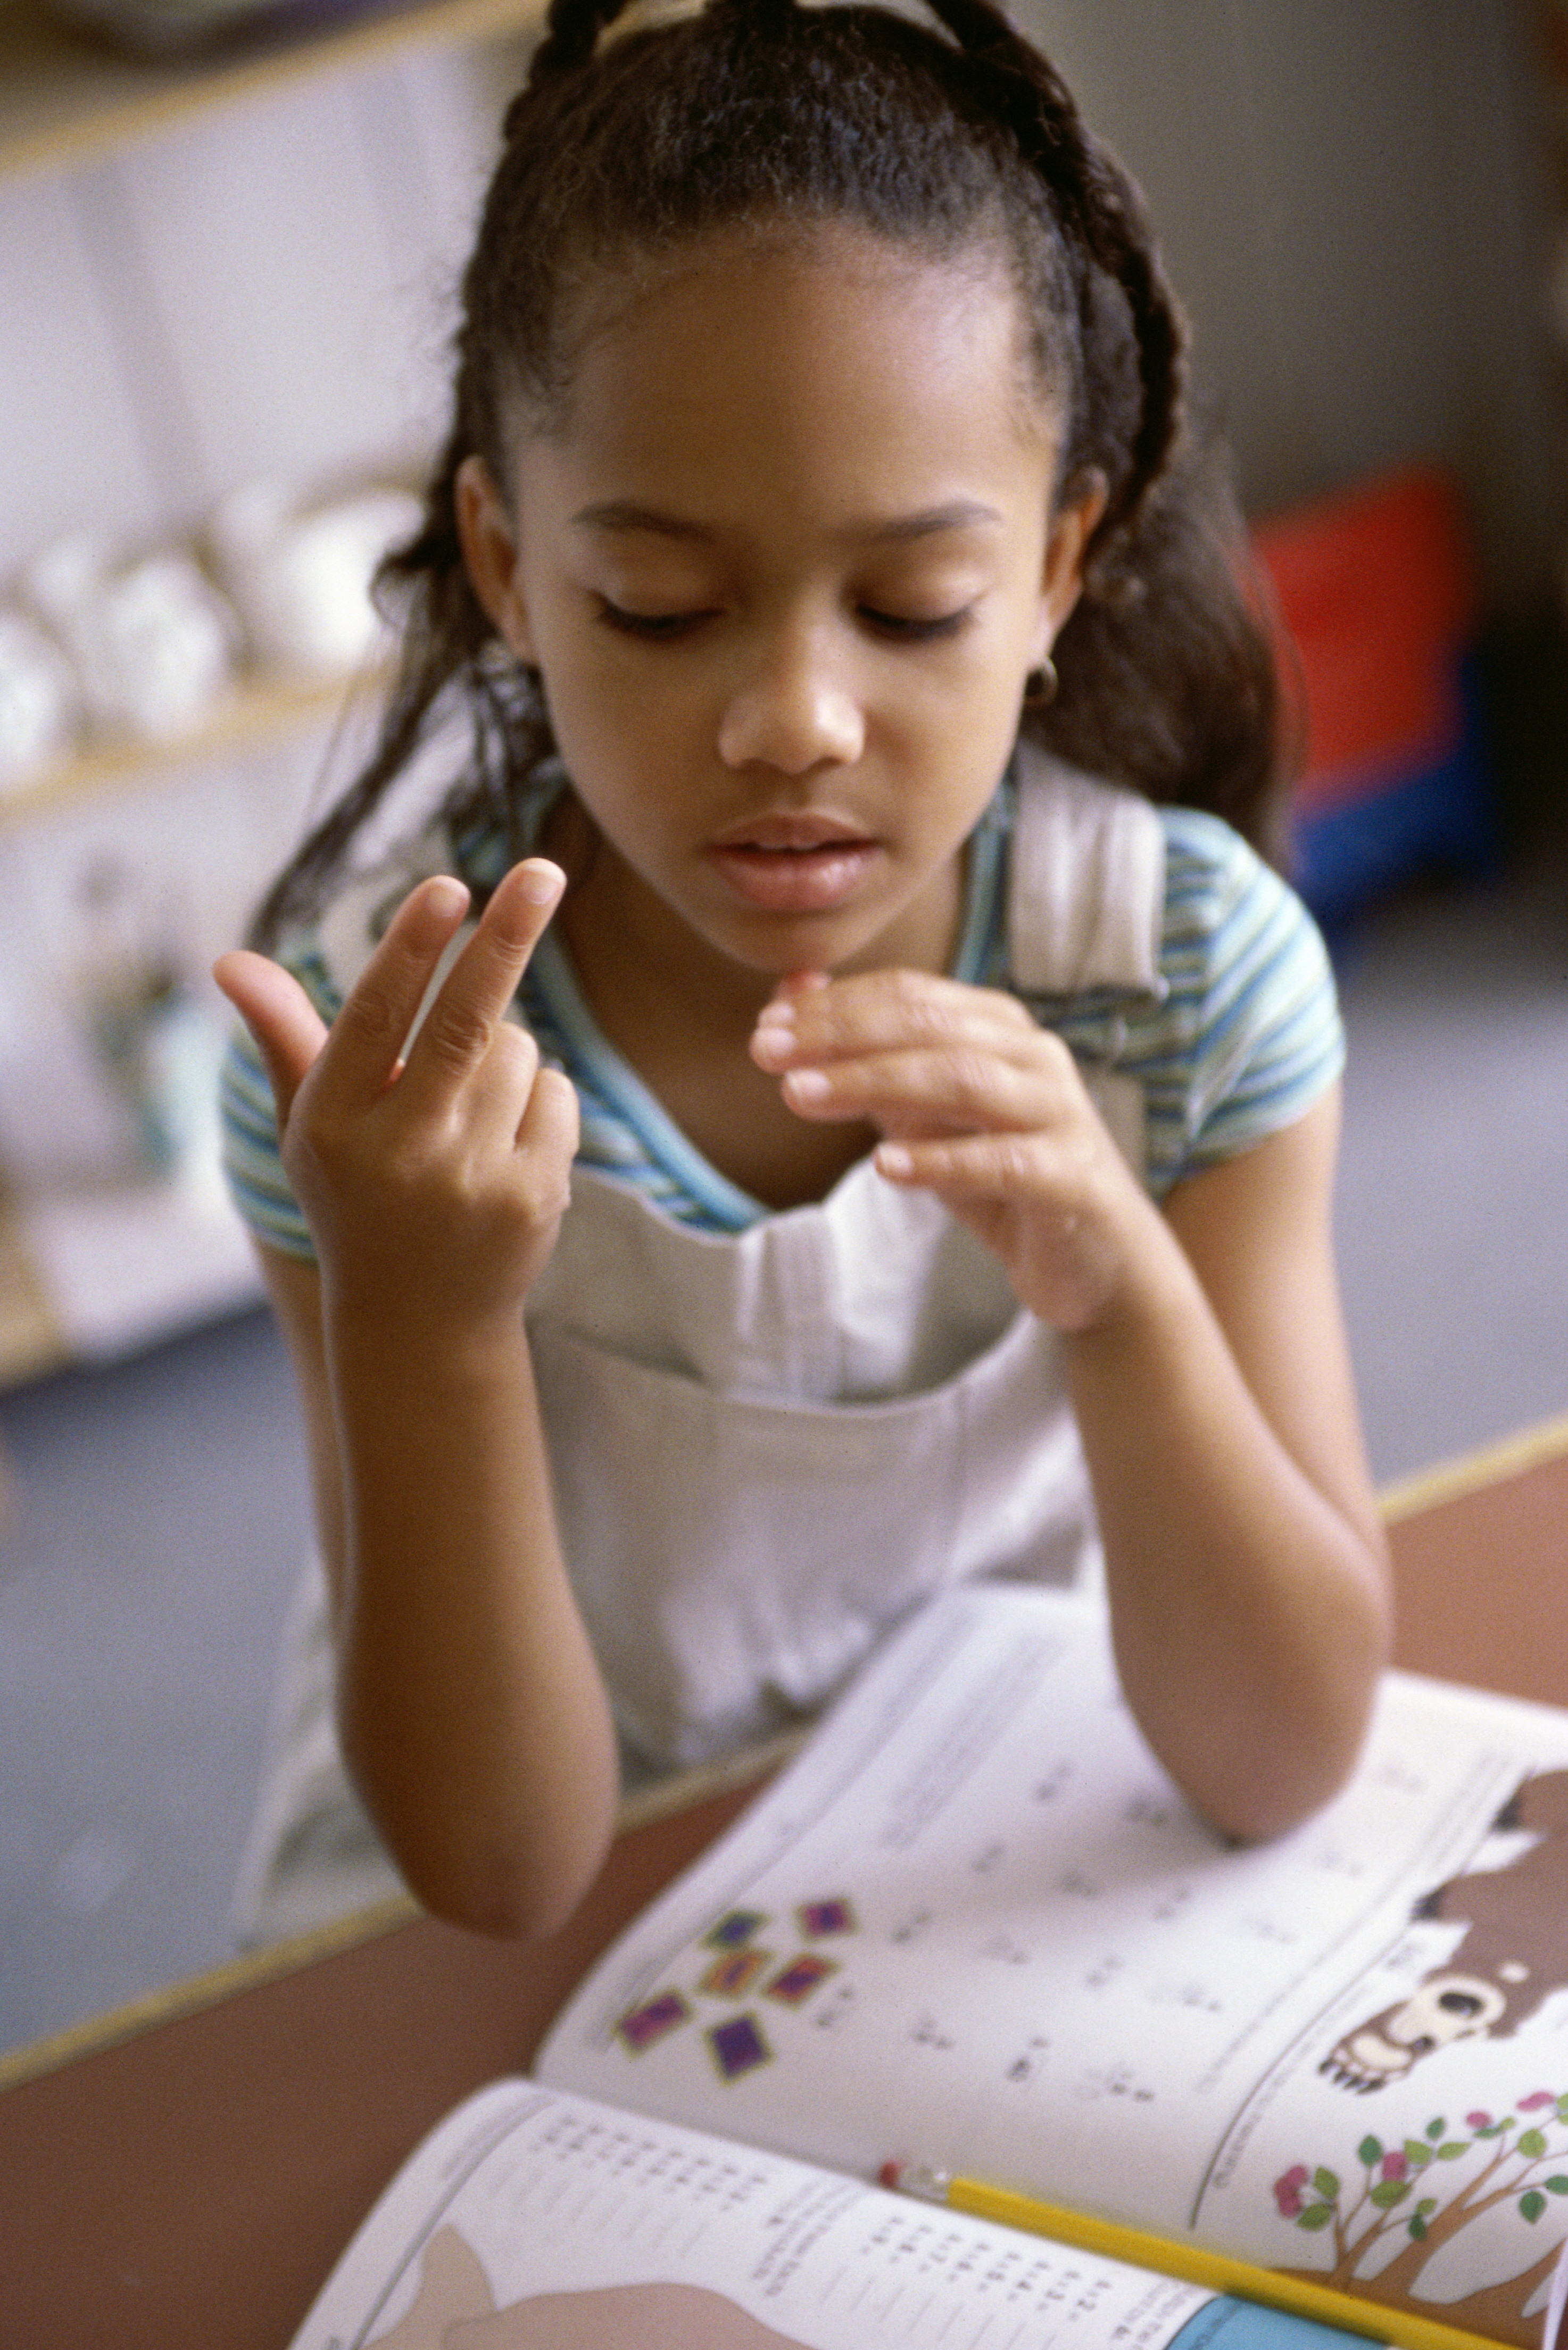 [image description: A young girl is looking down at her hands while forming the sign for 13 with her right hand.The background is blurred a bit.]